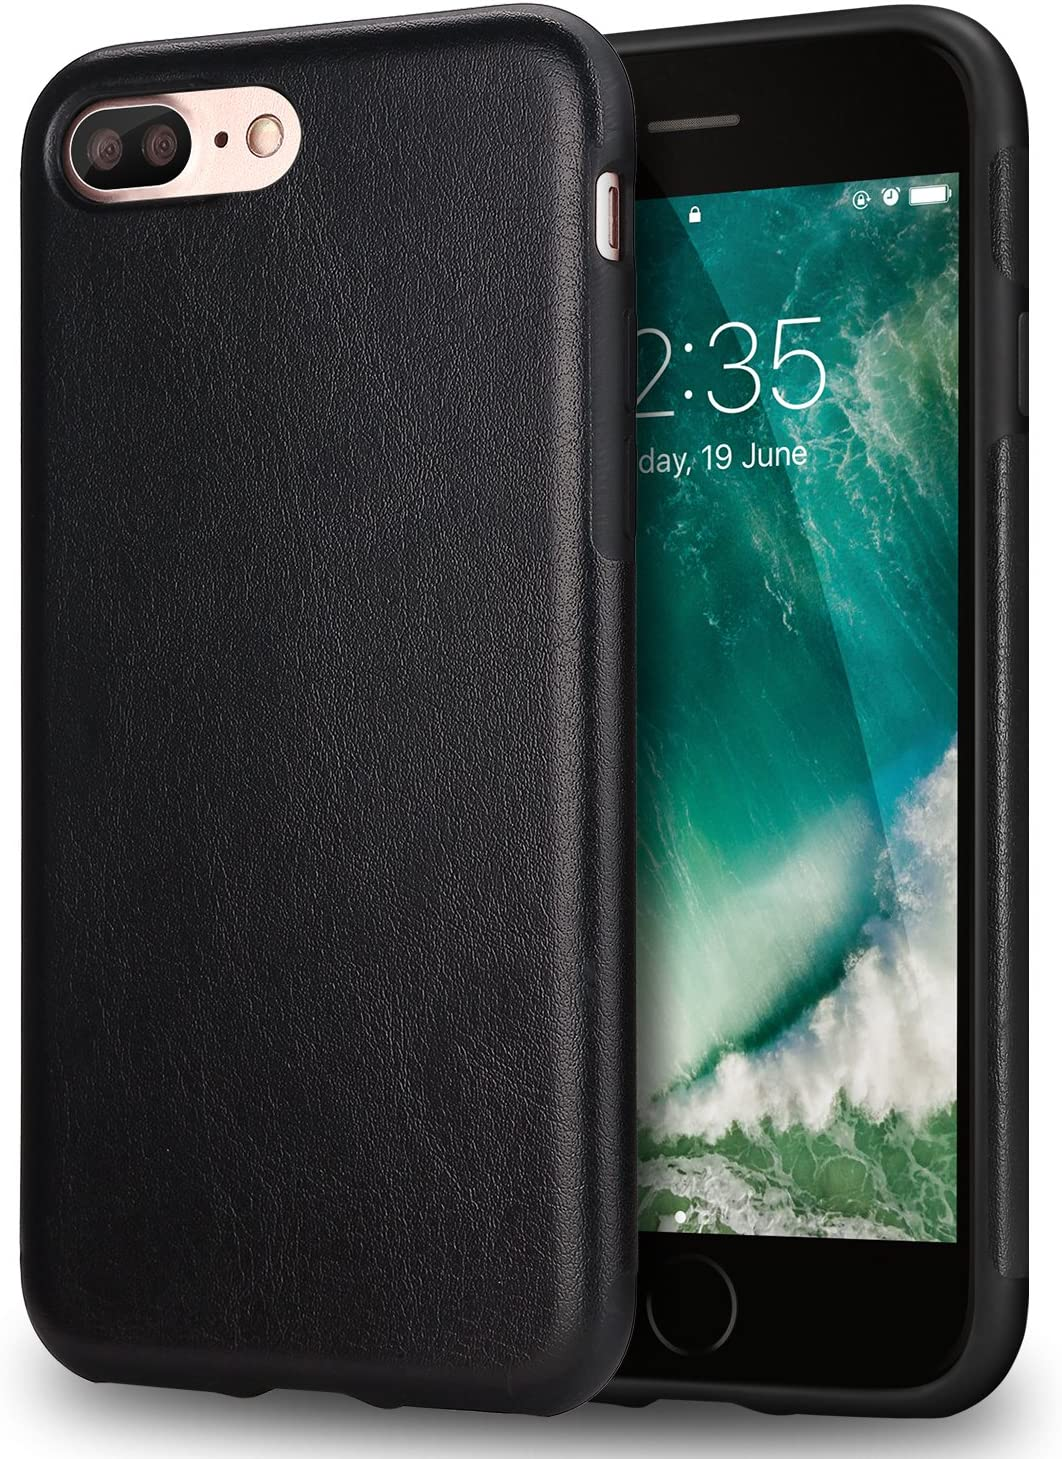 TENDLIN Funda iPhone 7 Plus Funda iPhone 8 Plus Cuero Silicona TPU Híbrido Suave Carcasa para iPhone 7 Plus y iPhone 8 Plus (Negro)